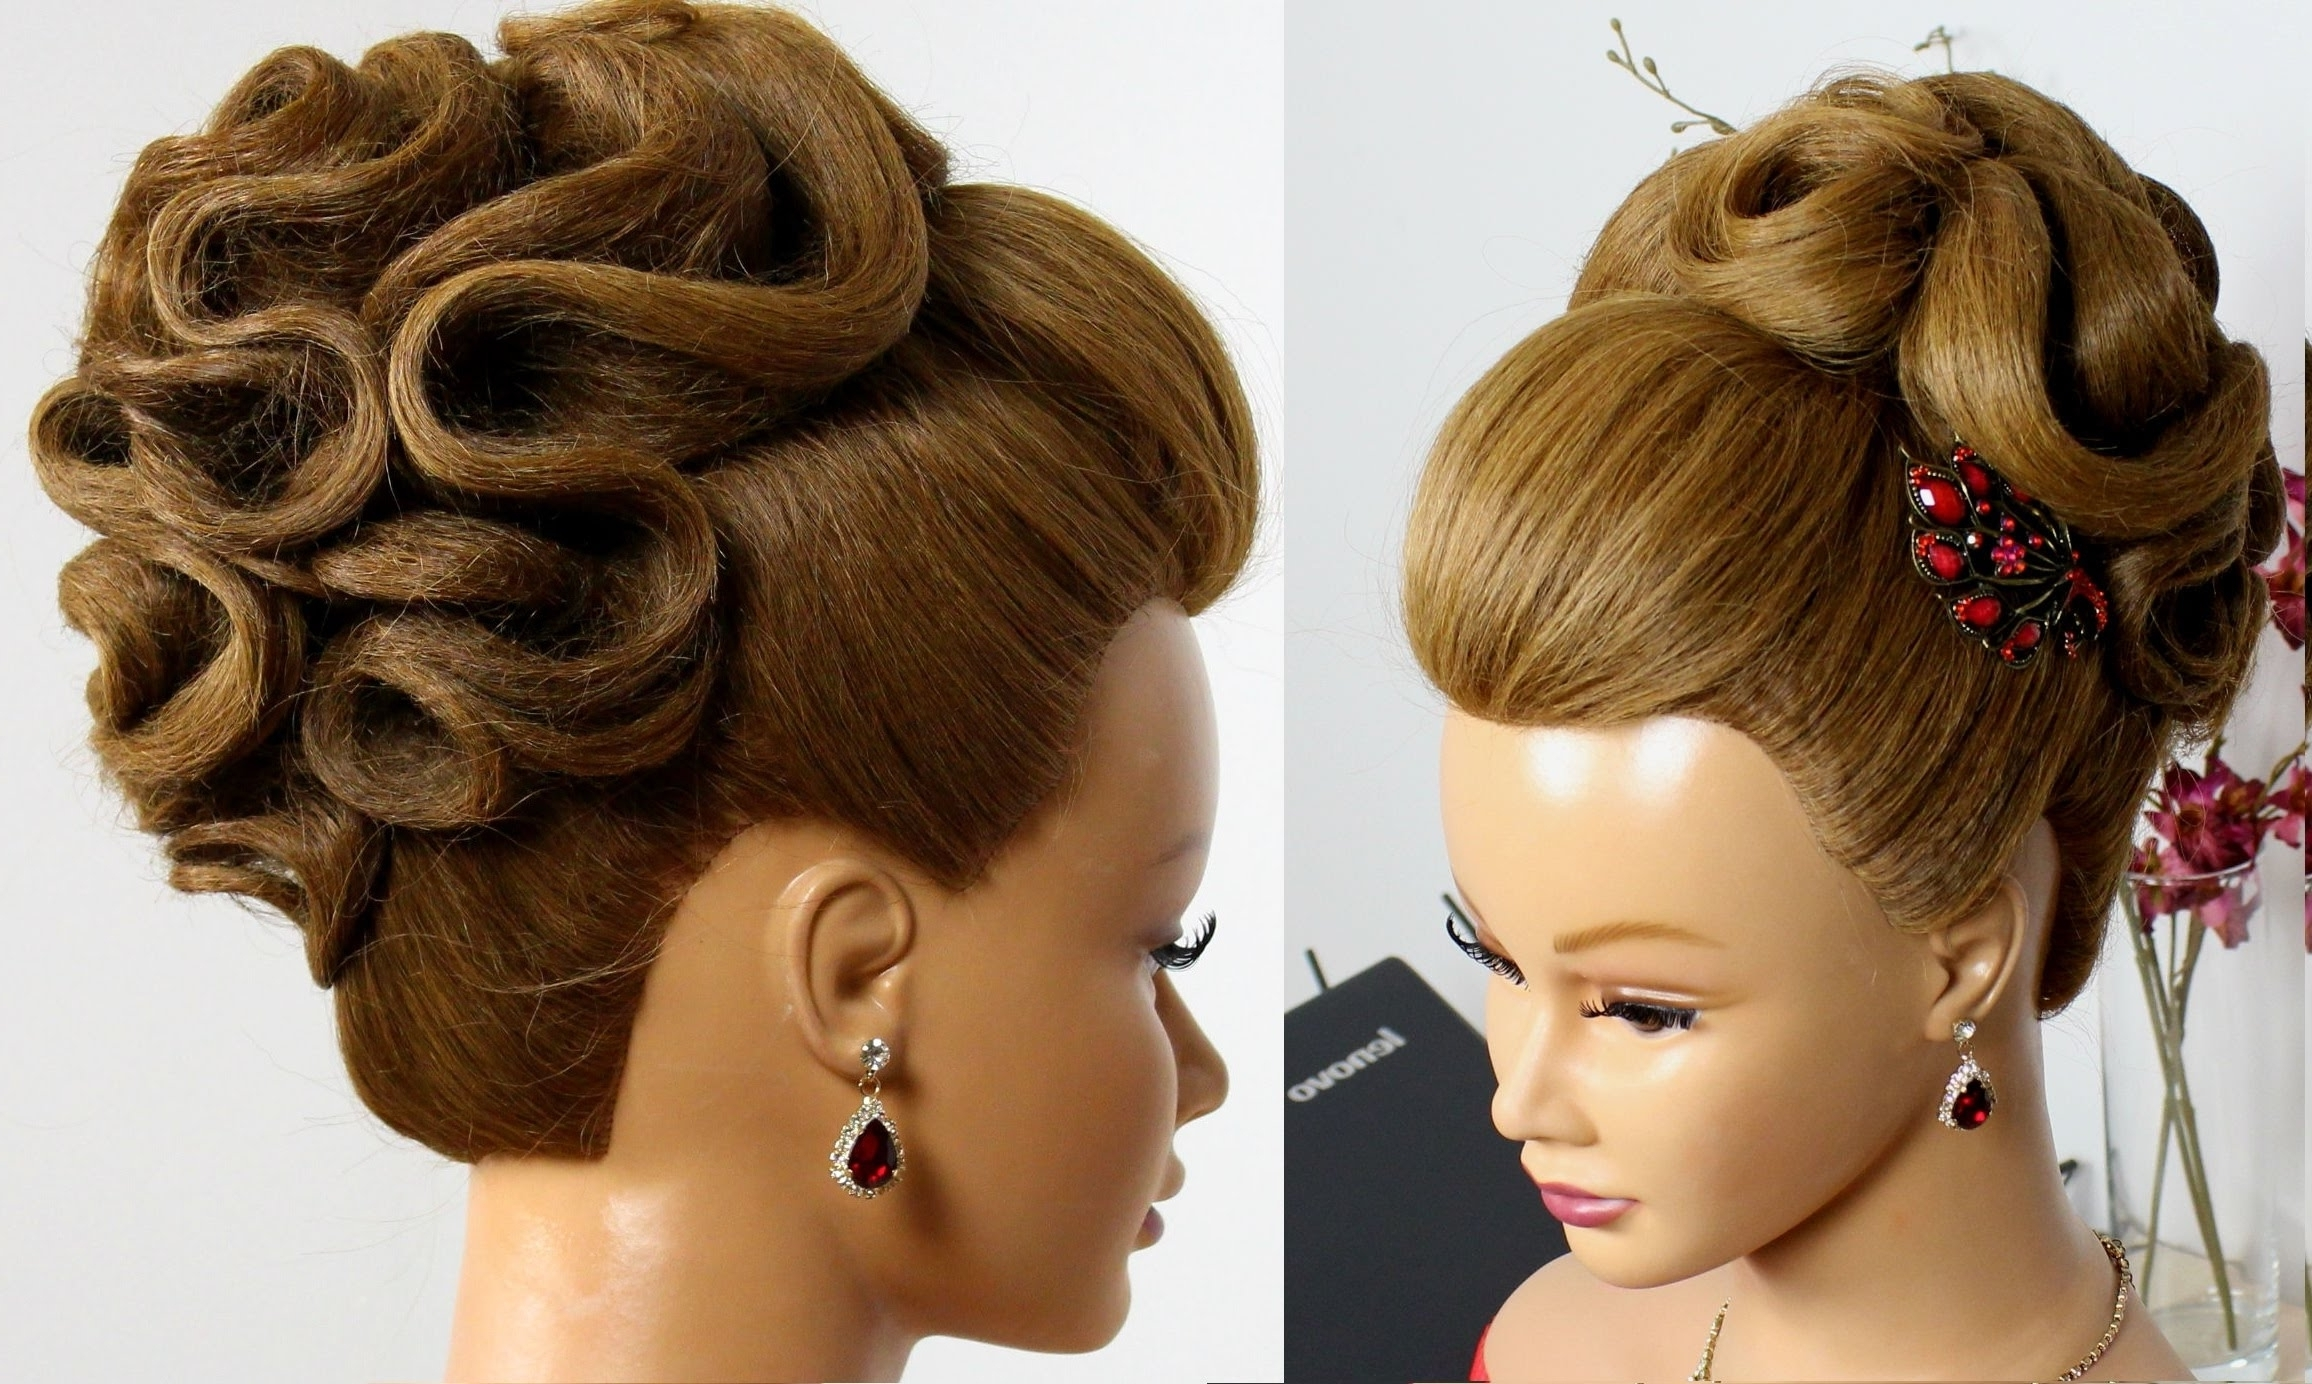 Impressive Hair Dos For Wedding Ideas Updo Guest Hairdos Guests Pertaining To Newest Updos Wedding Hairstyles For Long Hair (View 7 of 15)